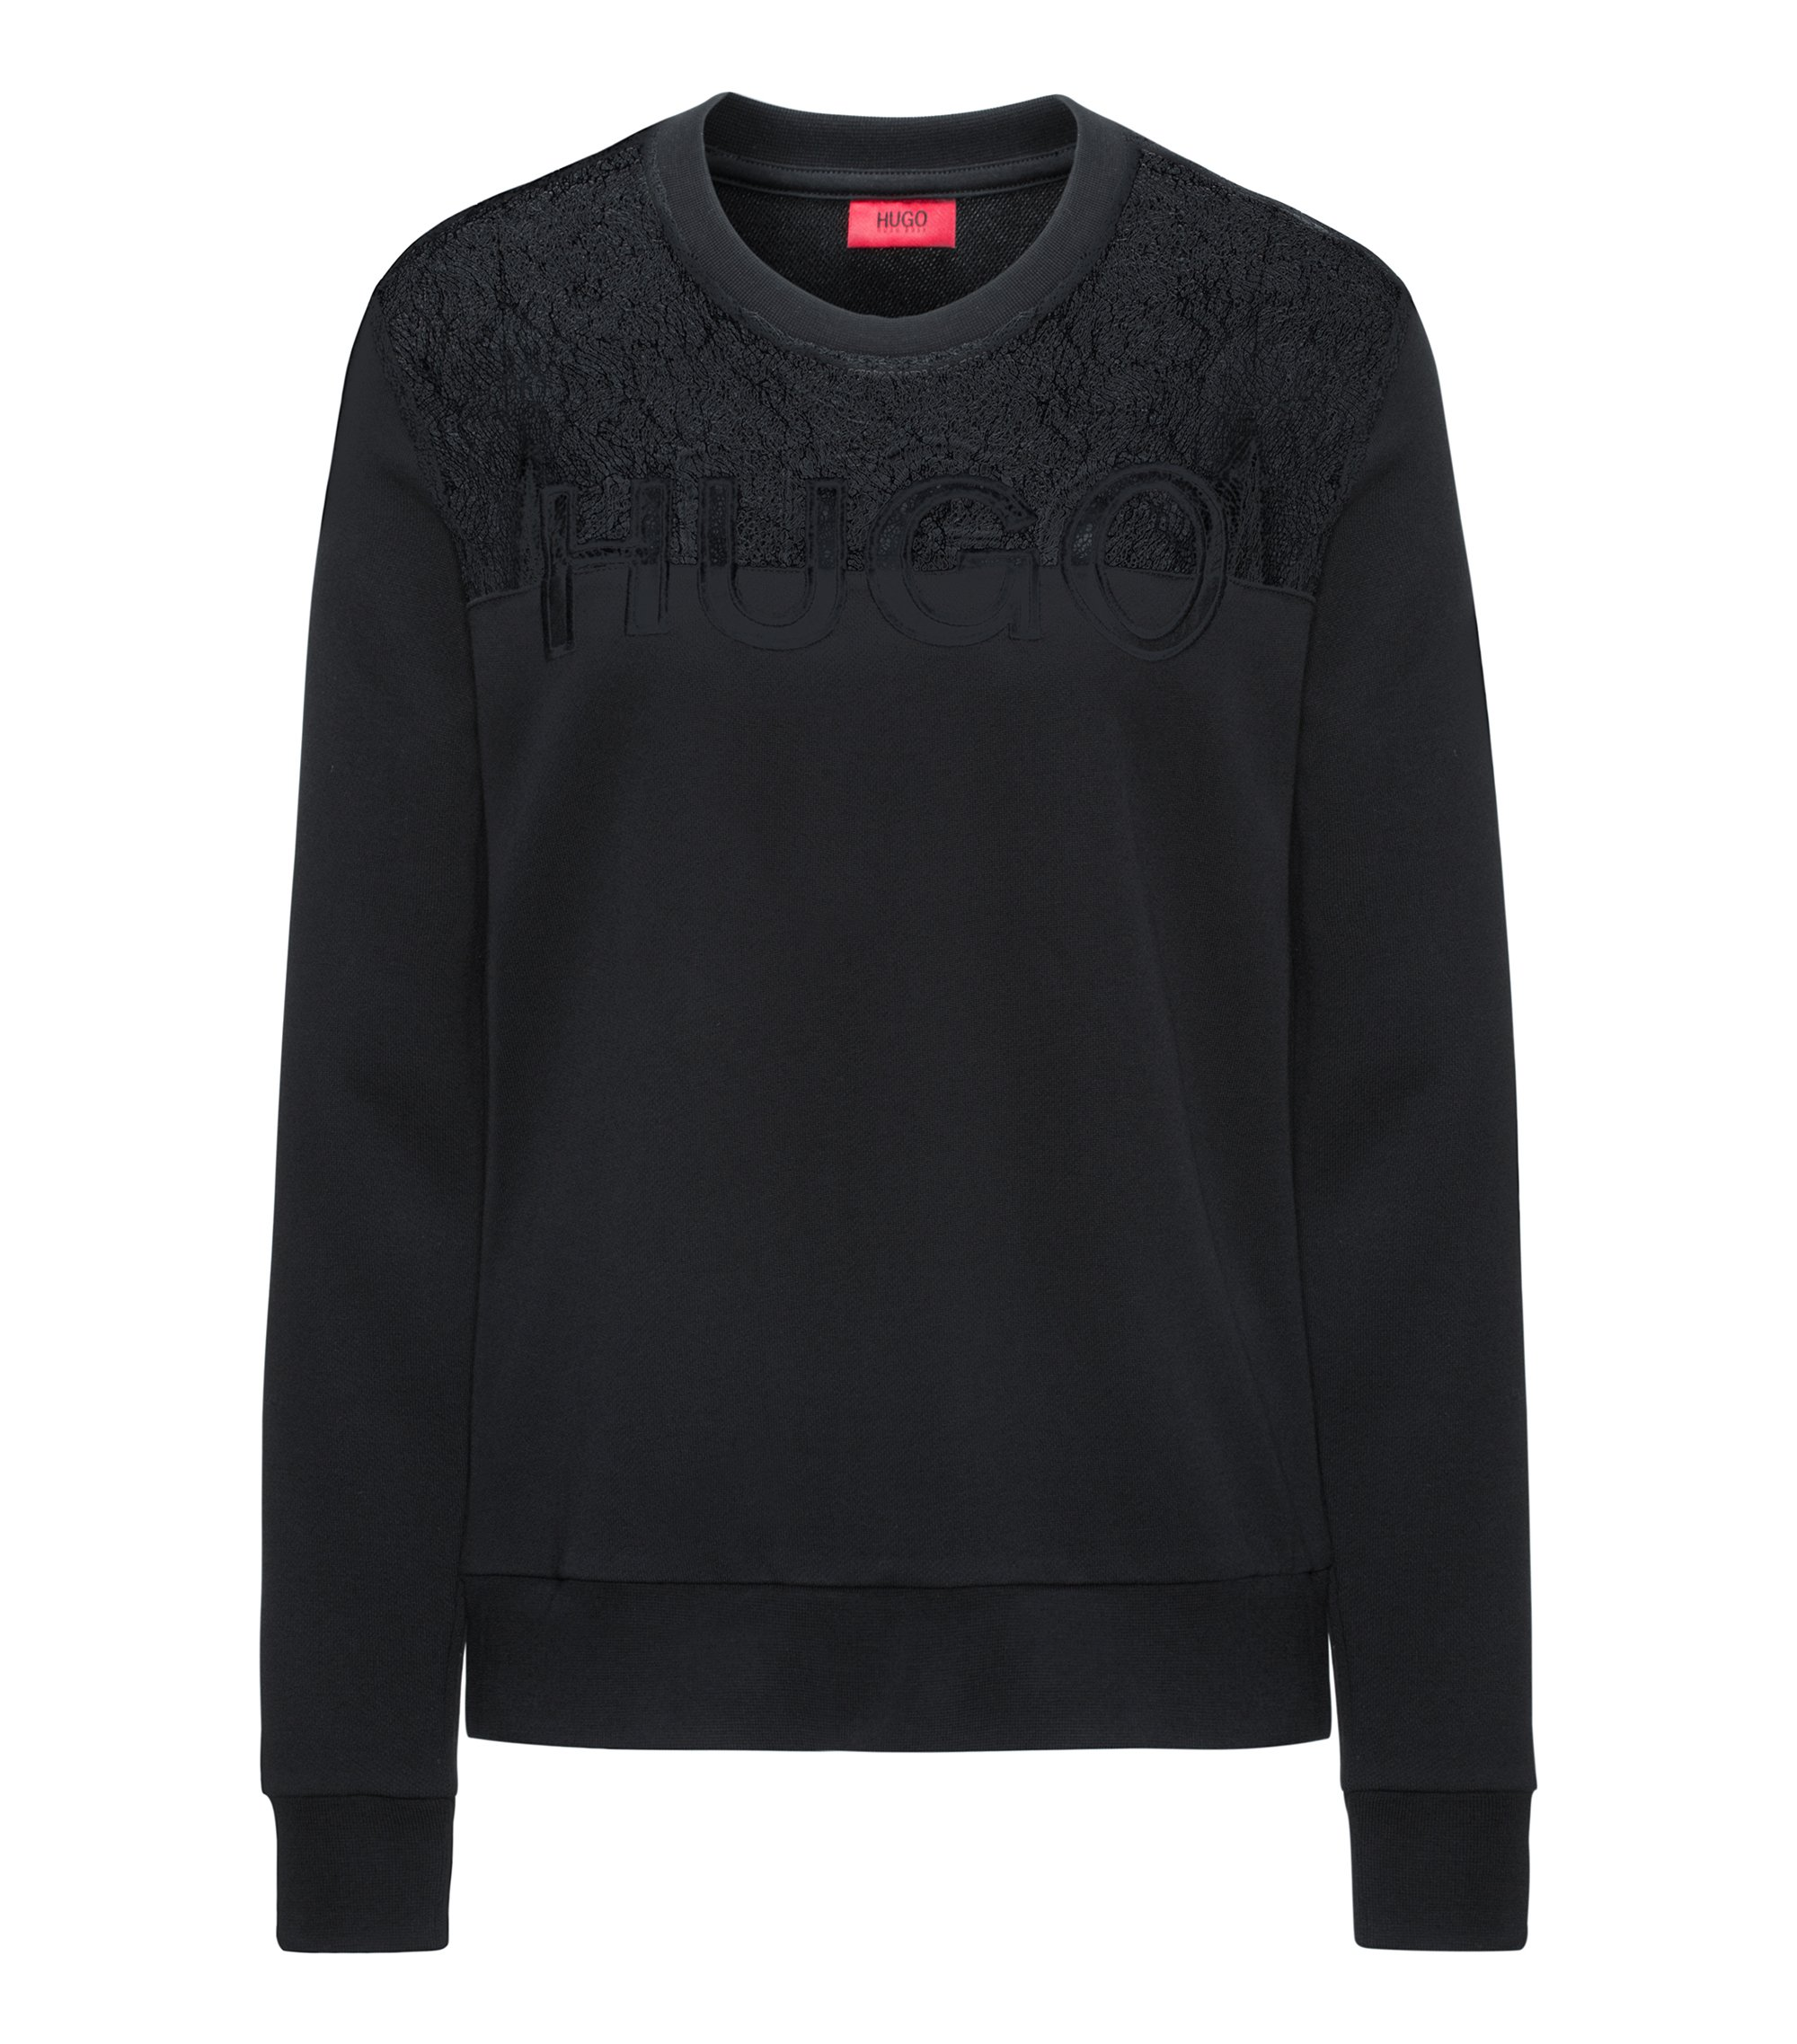 Cotton-blend logo sweater with lace yoke, Black